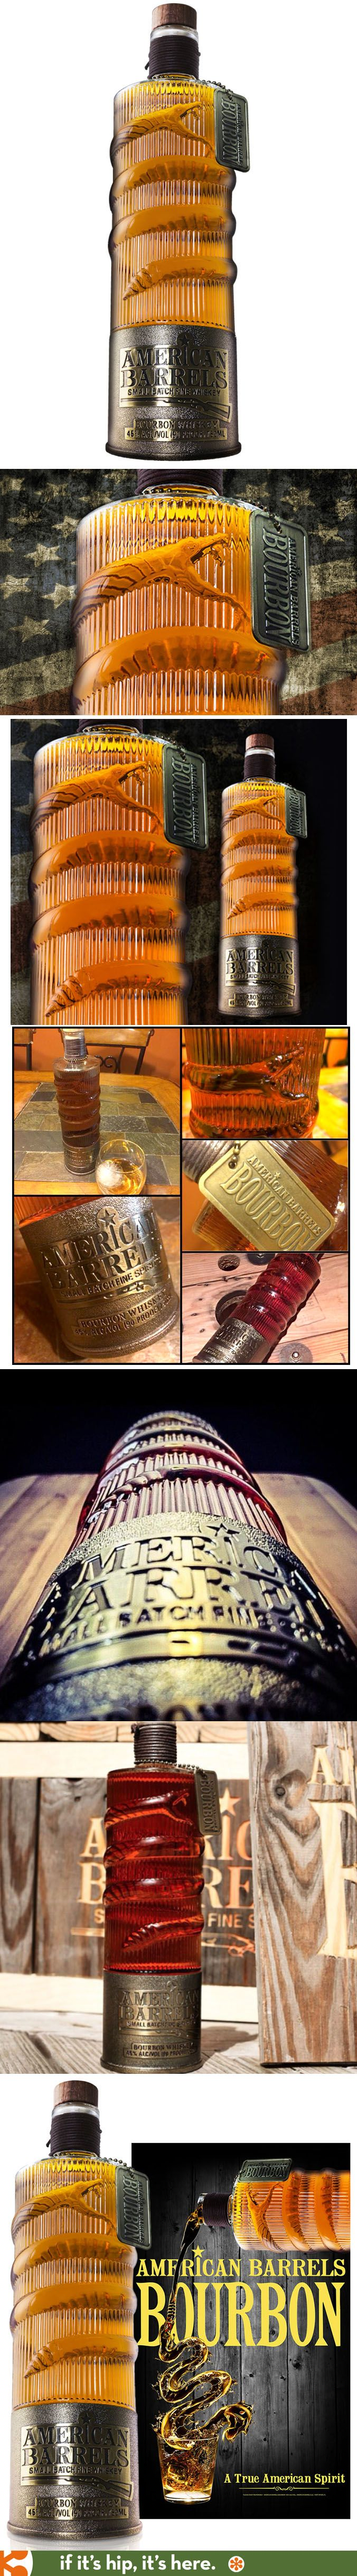 American Barrels Bourbon has a bottle with a snake wrapped around it designed by…